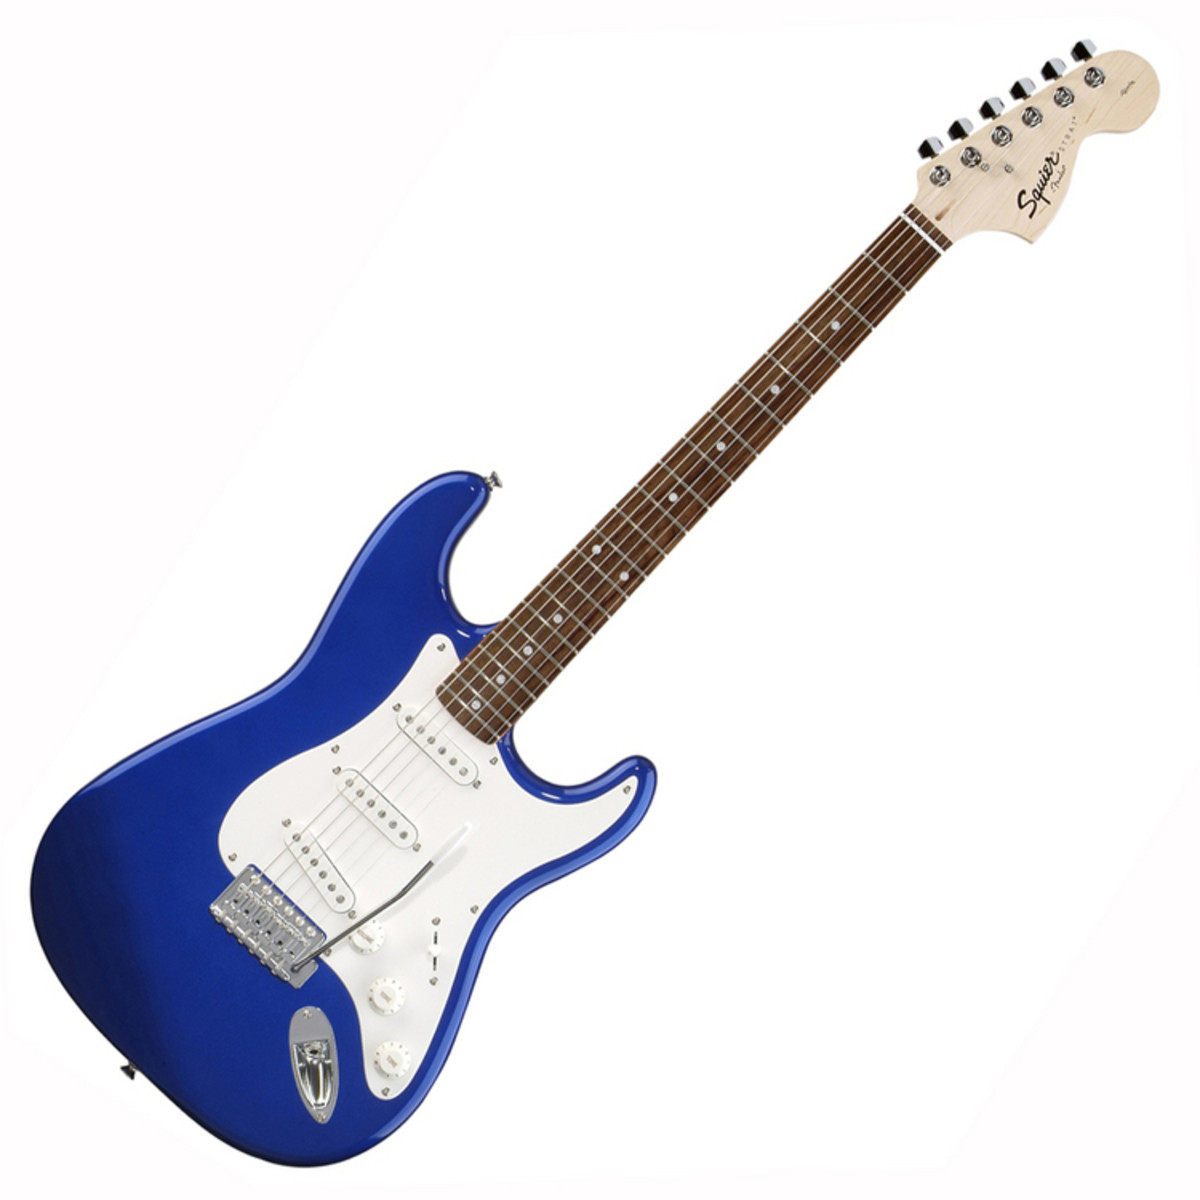 squier by fender affinity stratocaster metallic blue at gear4music. Black Bedroom Furniture Sets. Home Design Ideas